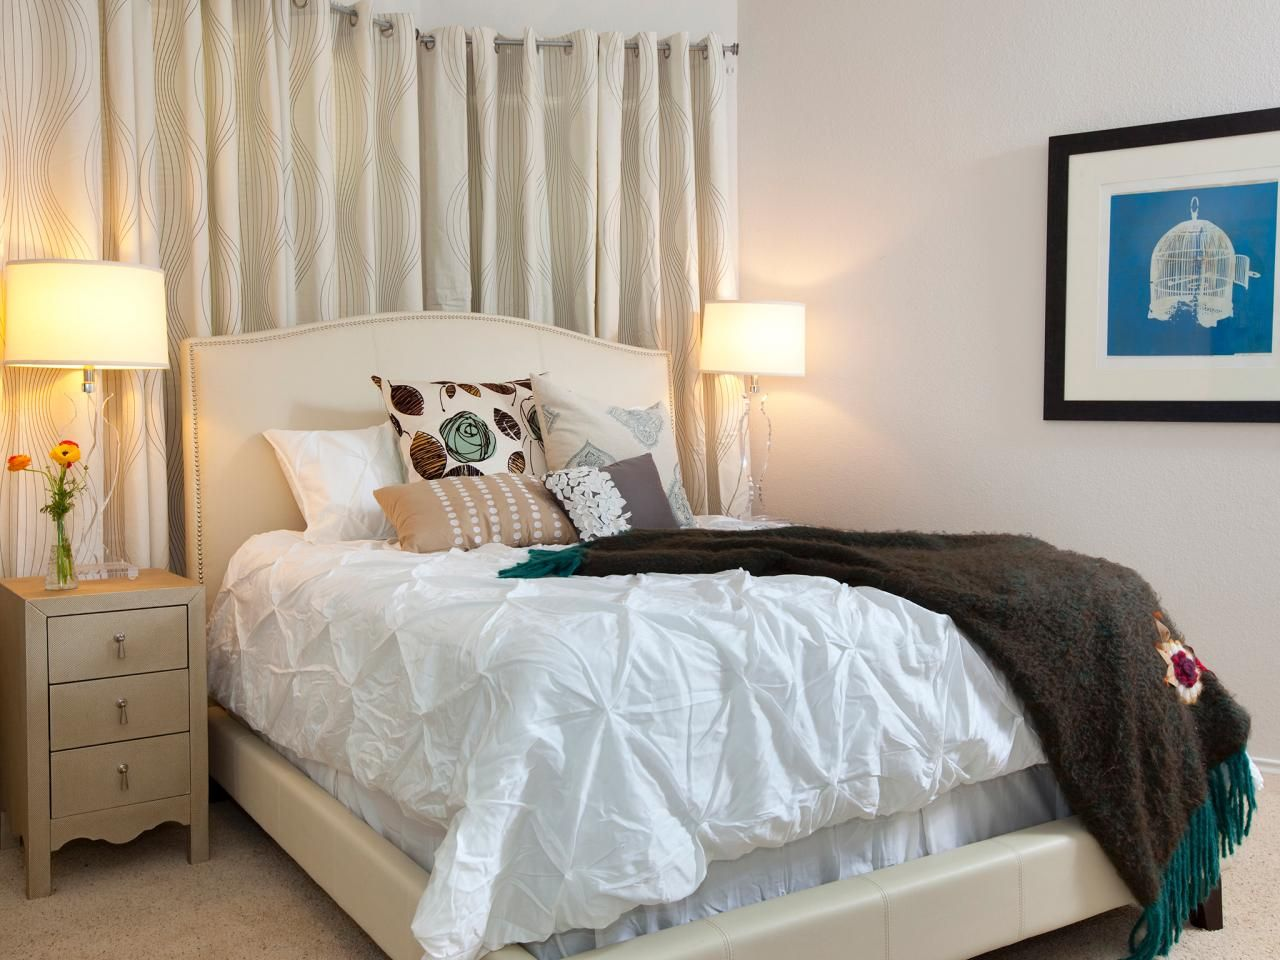 Amazing Makeovers By The Property Brothers HGTV Shows Experts - Property brothers bedroom designs